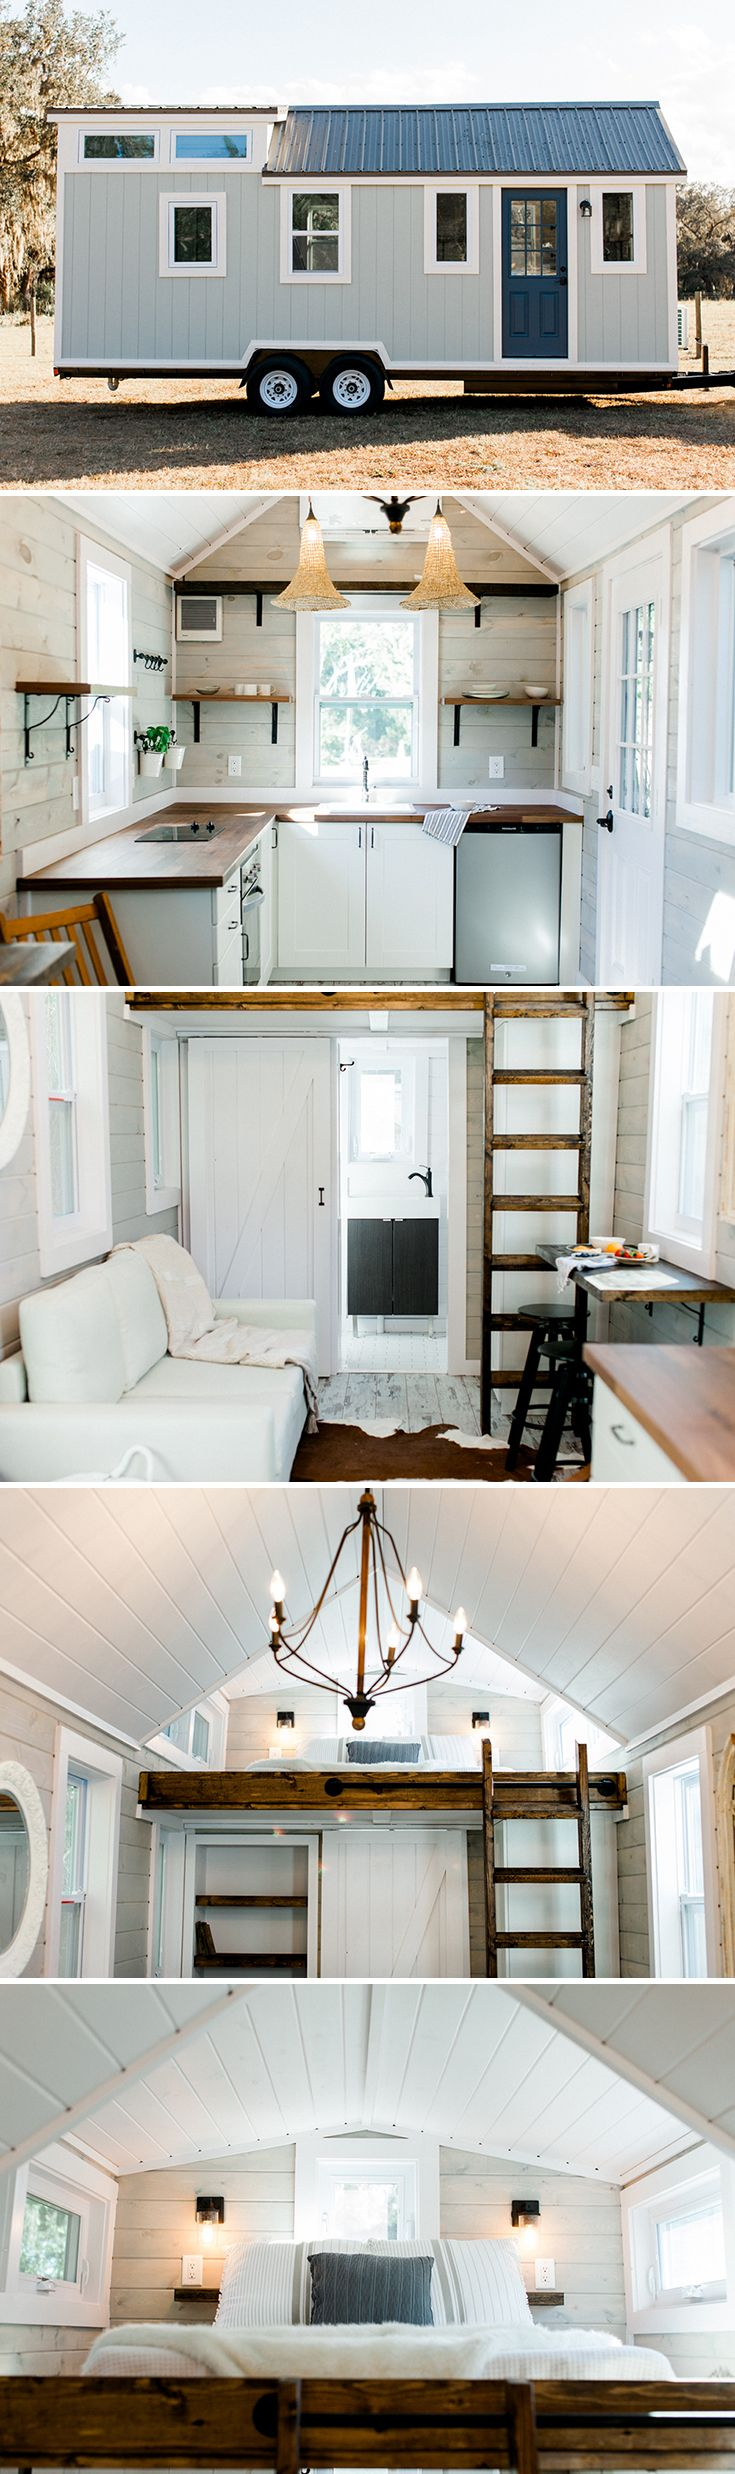 25 best ideas about tiny homes interior on pinterest tiny homes mini homes and mini houses - Interior Designs For Homes